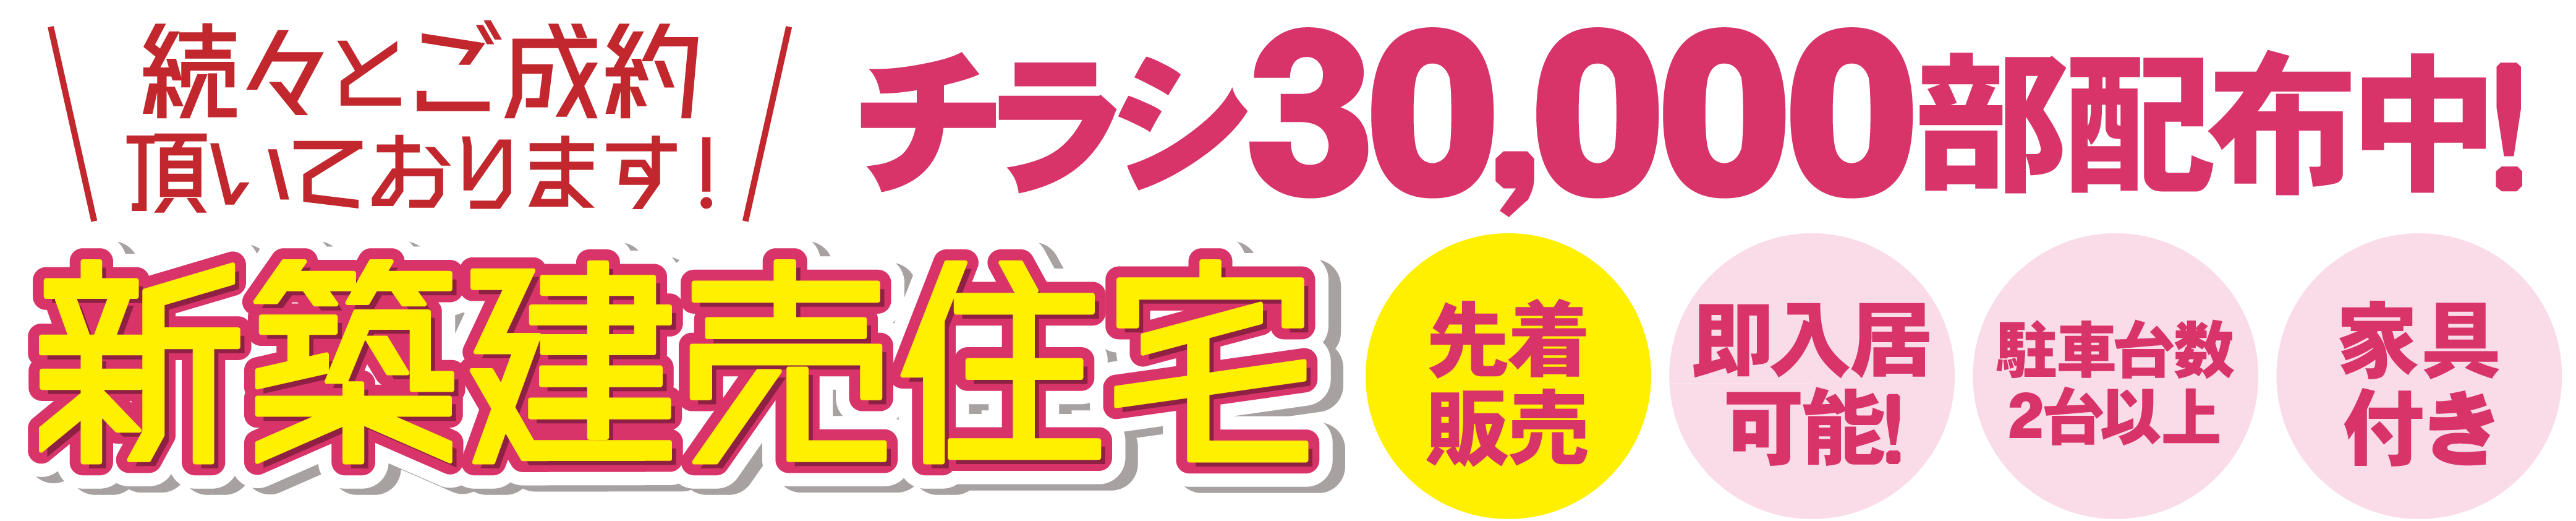 banner0302-01.png